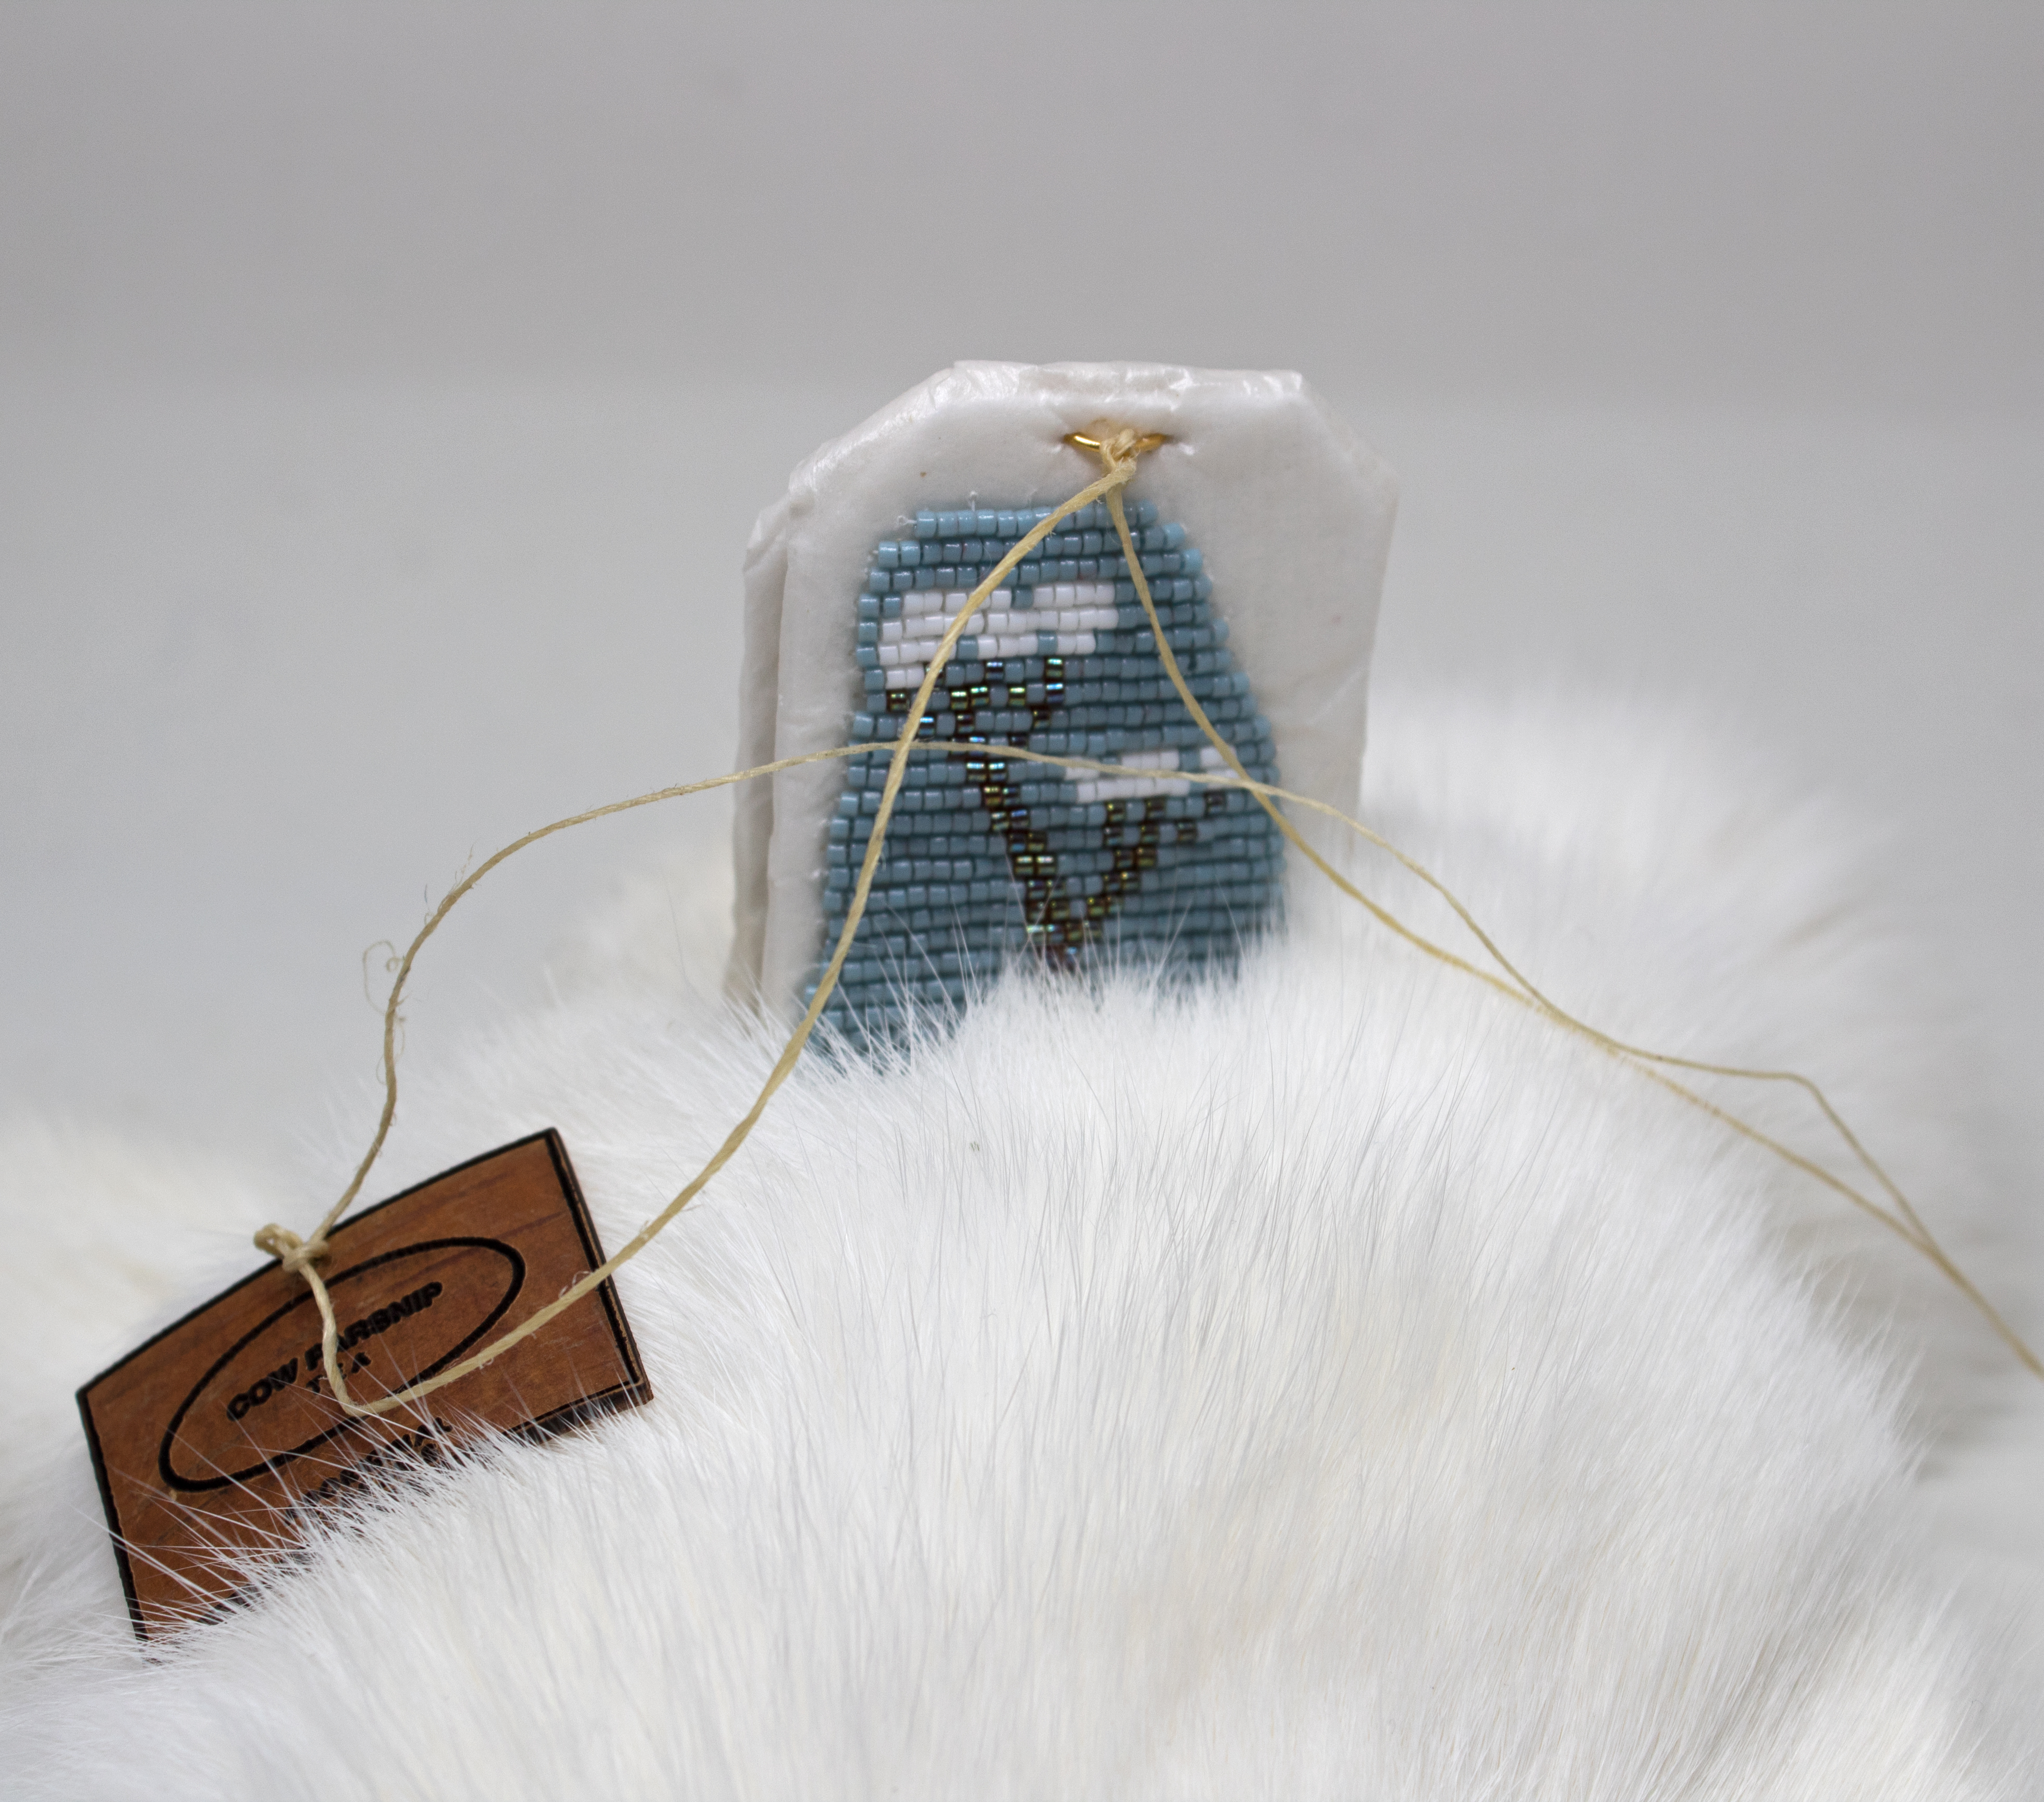 Art by Catherine Blackburn - a tea bag encrusted with blue and white beads on a fur blanket